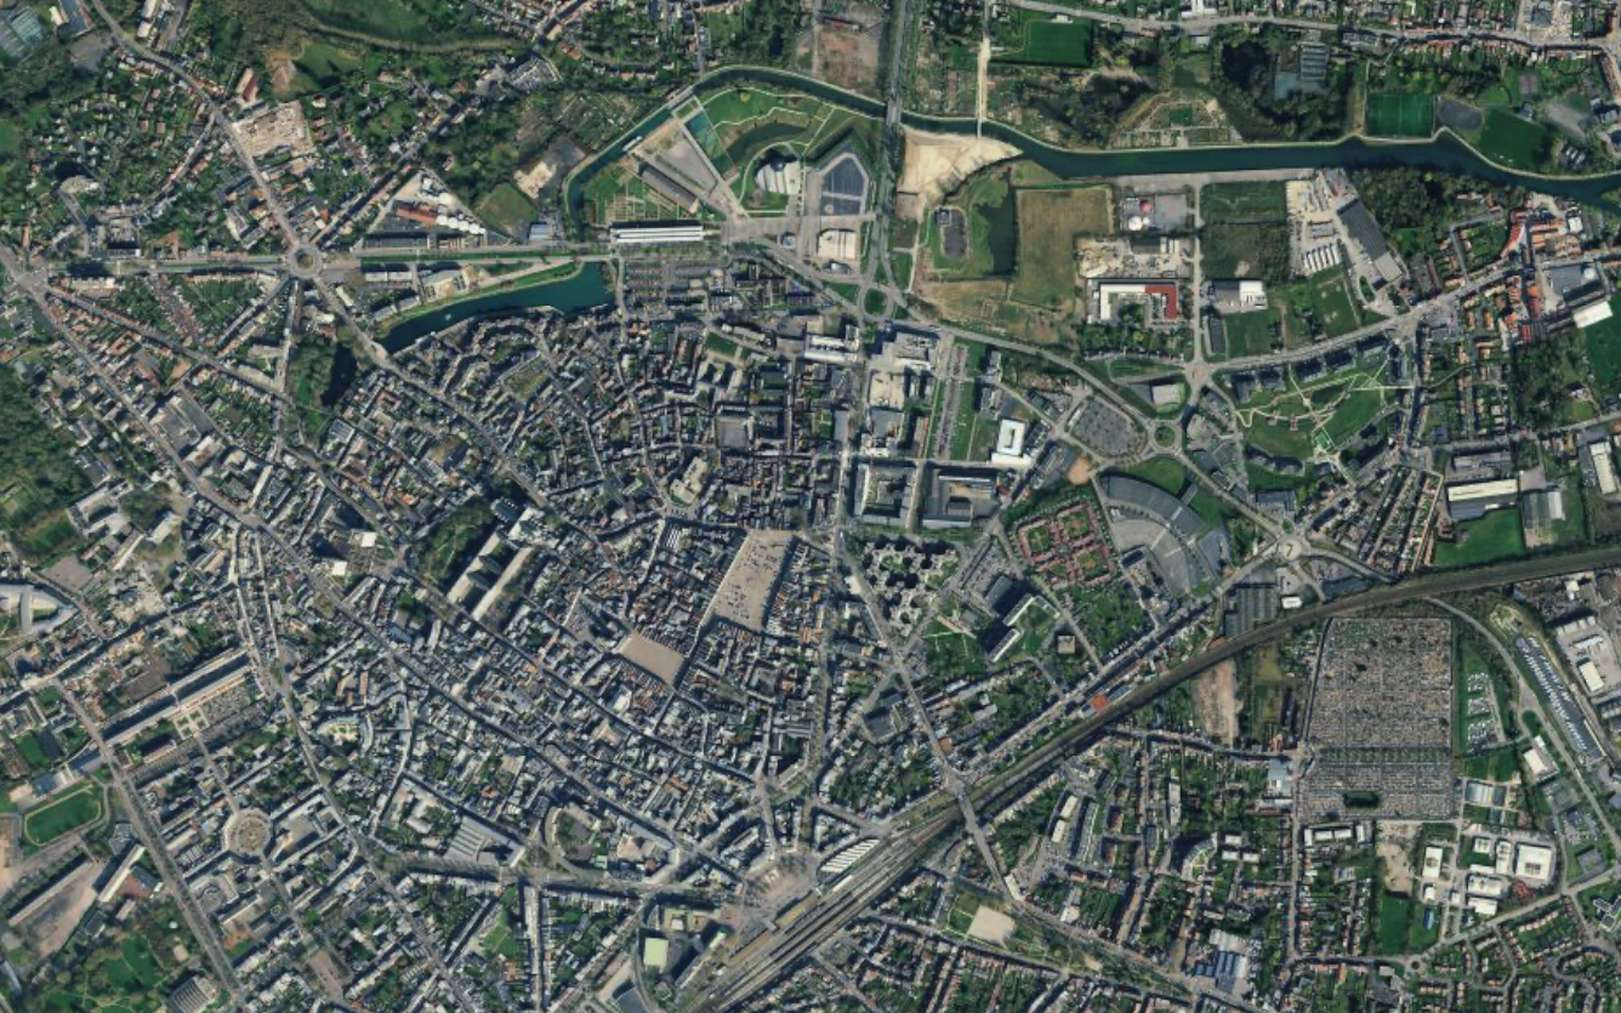 Une vue satellite de la ville d'Arras. © Apple Plans